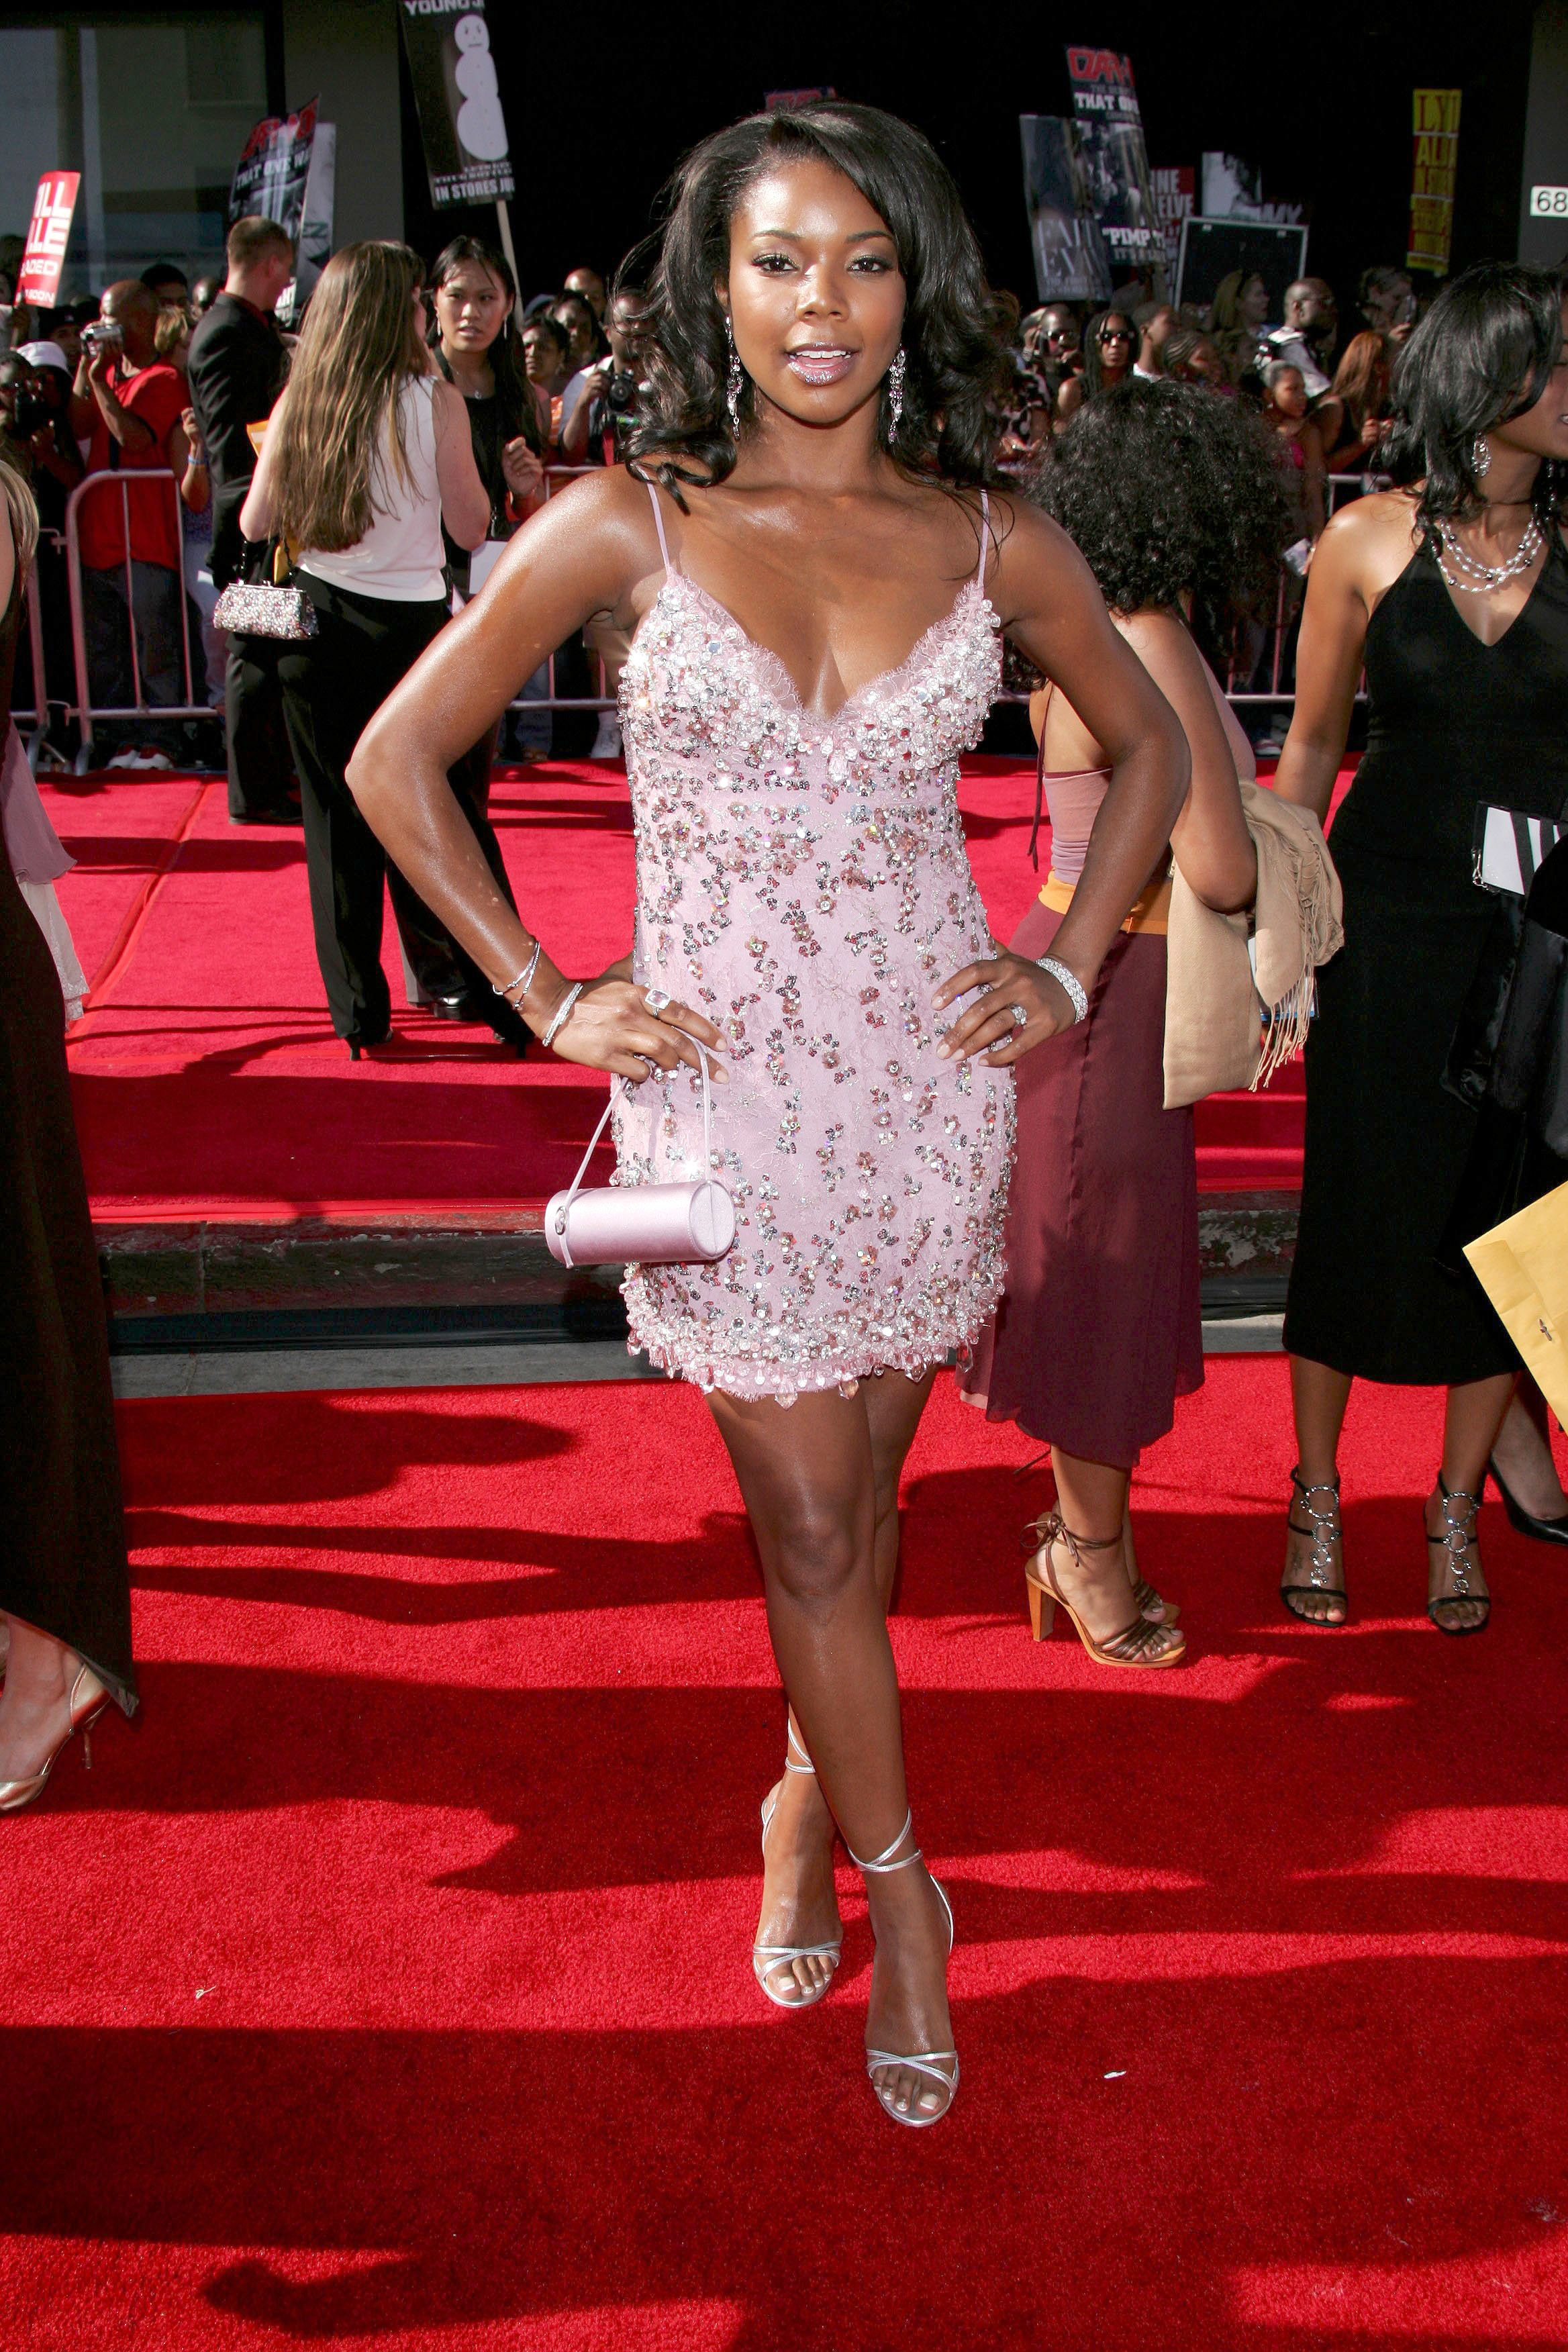 Gabrielle Union attends the BET Awards in Los Angeles on June 28, 2005.